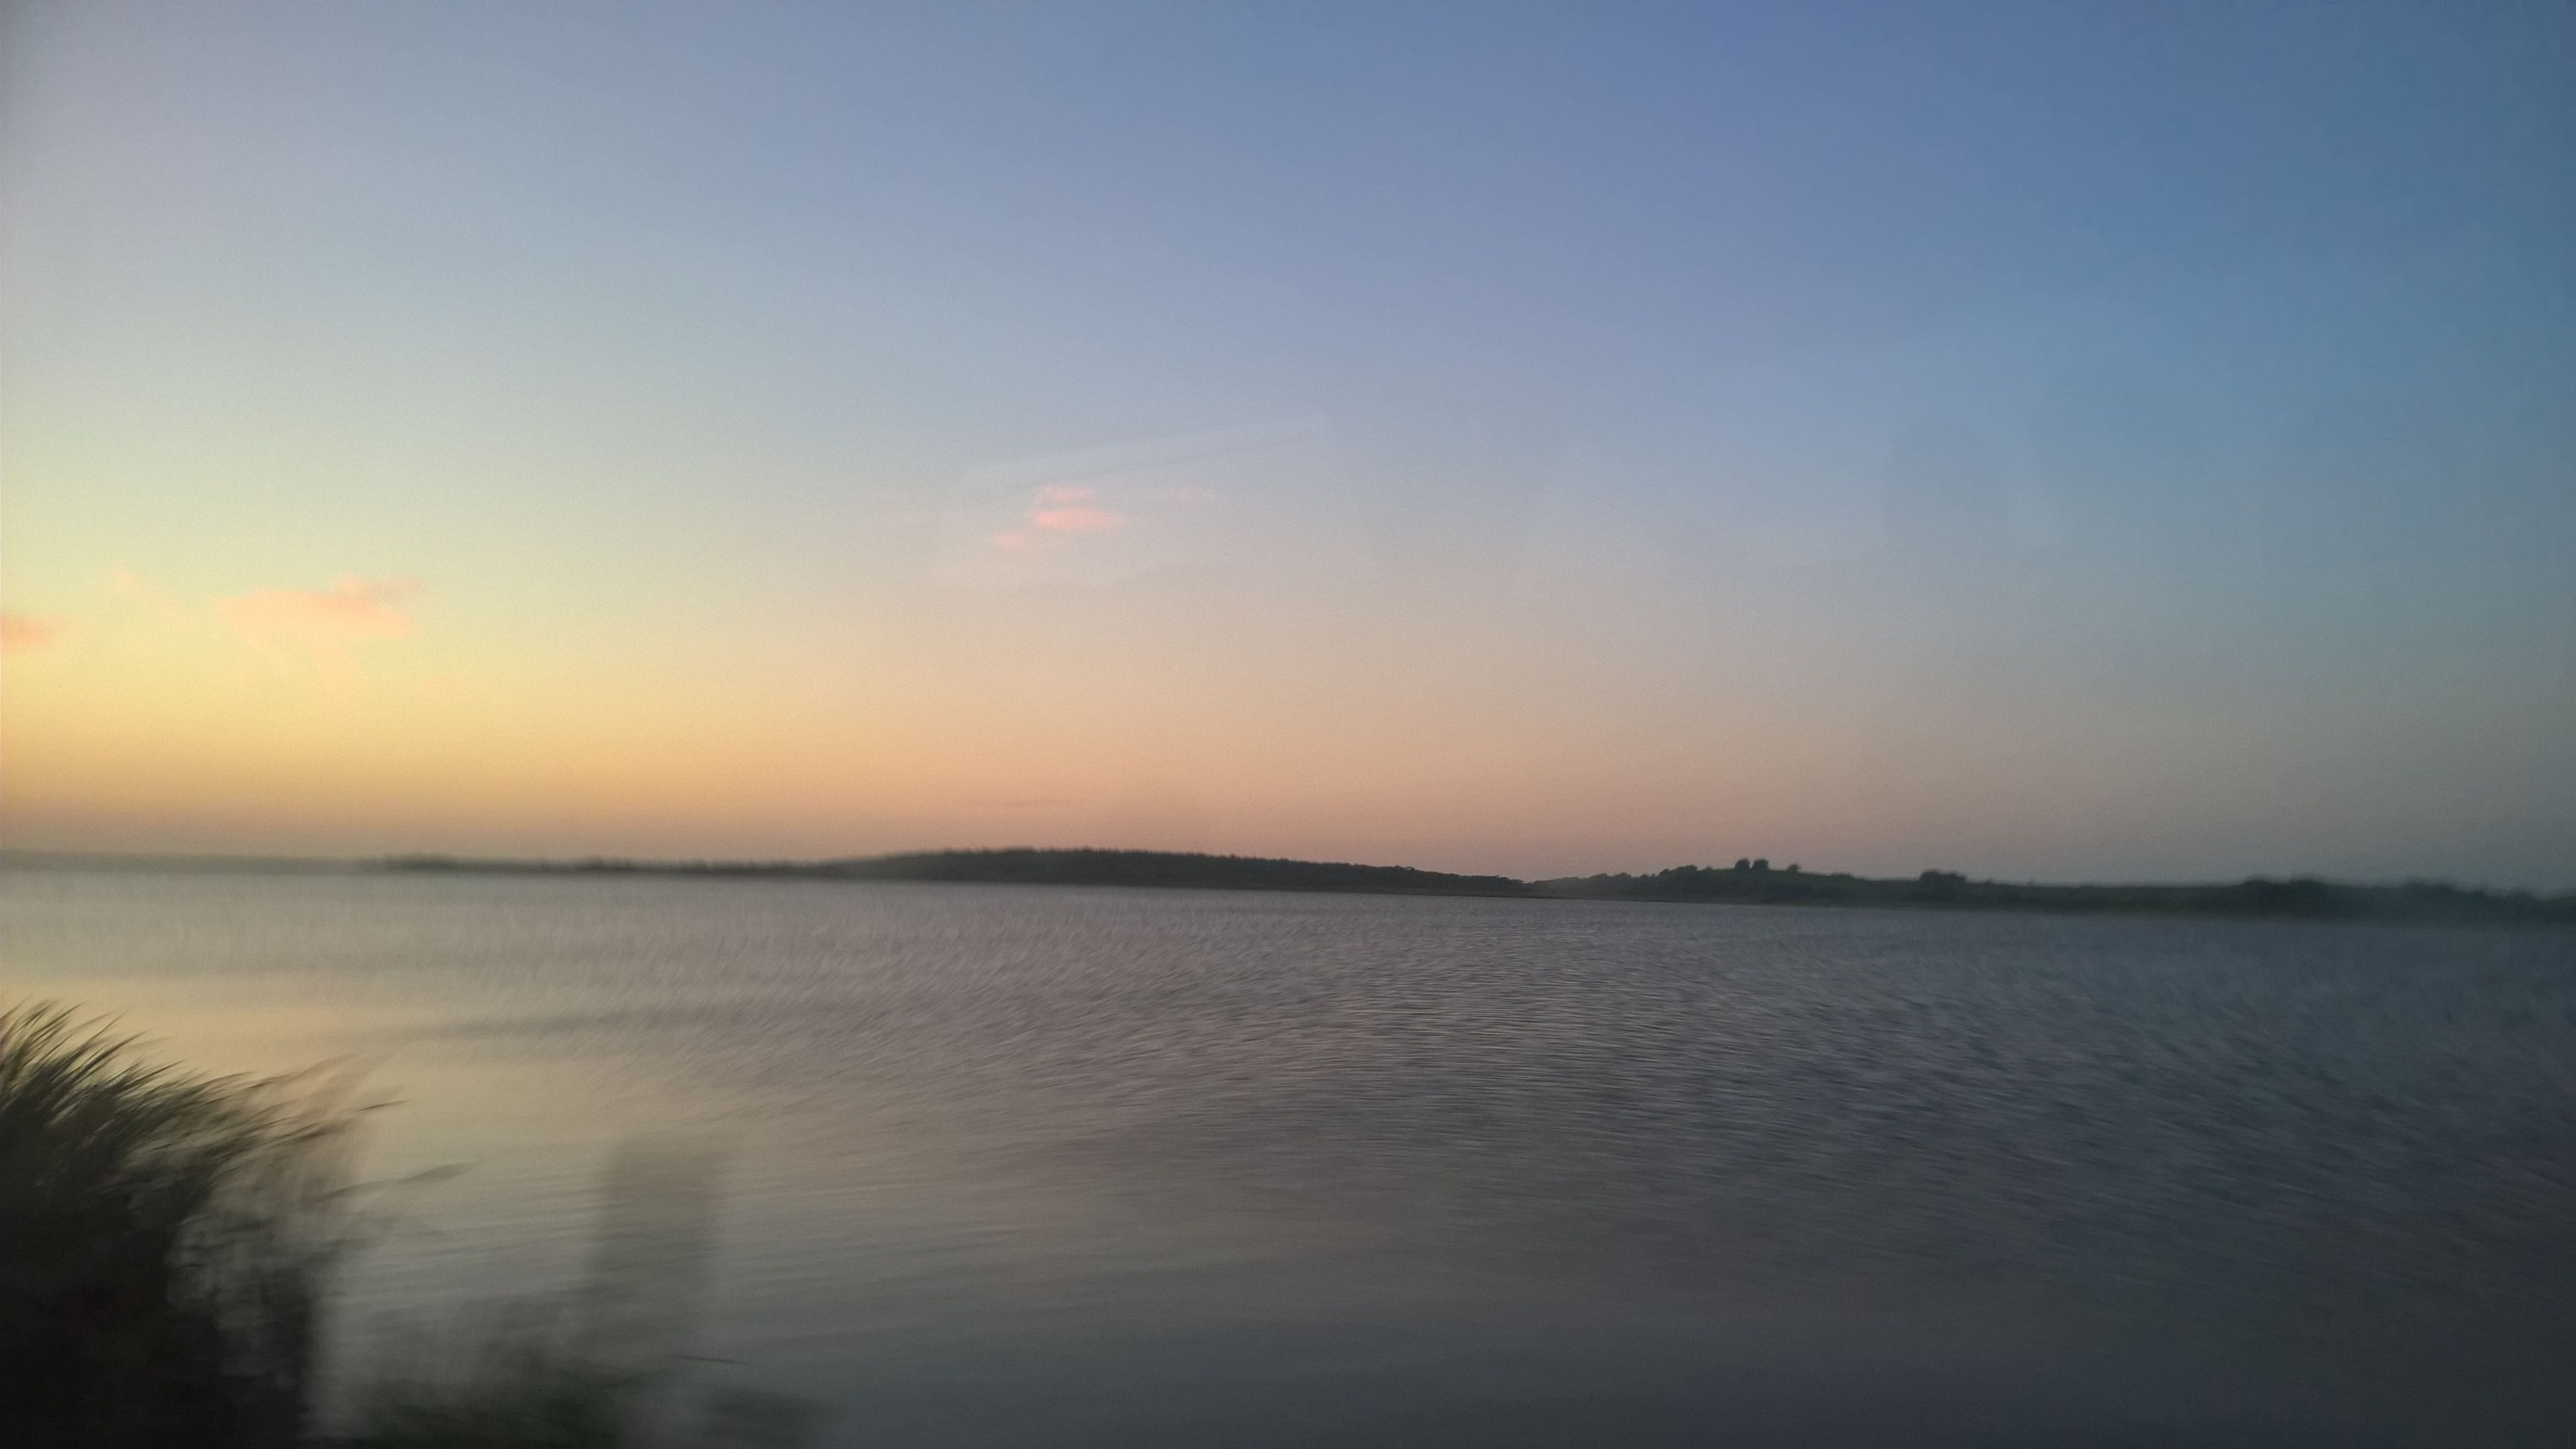 water, nature, tranquility, sky, tranquil scene, beauty in nature, reflection, sunset, scenics, no people, sea, outdoors, tree, day